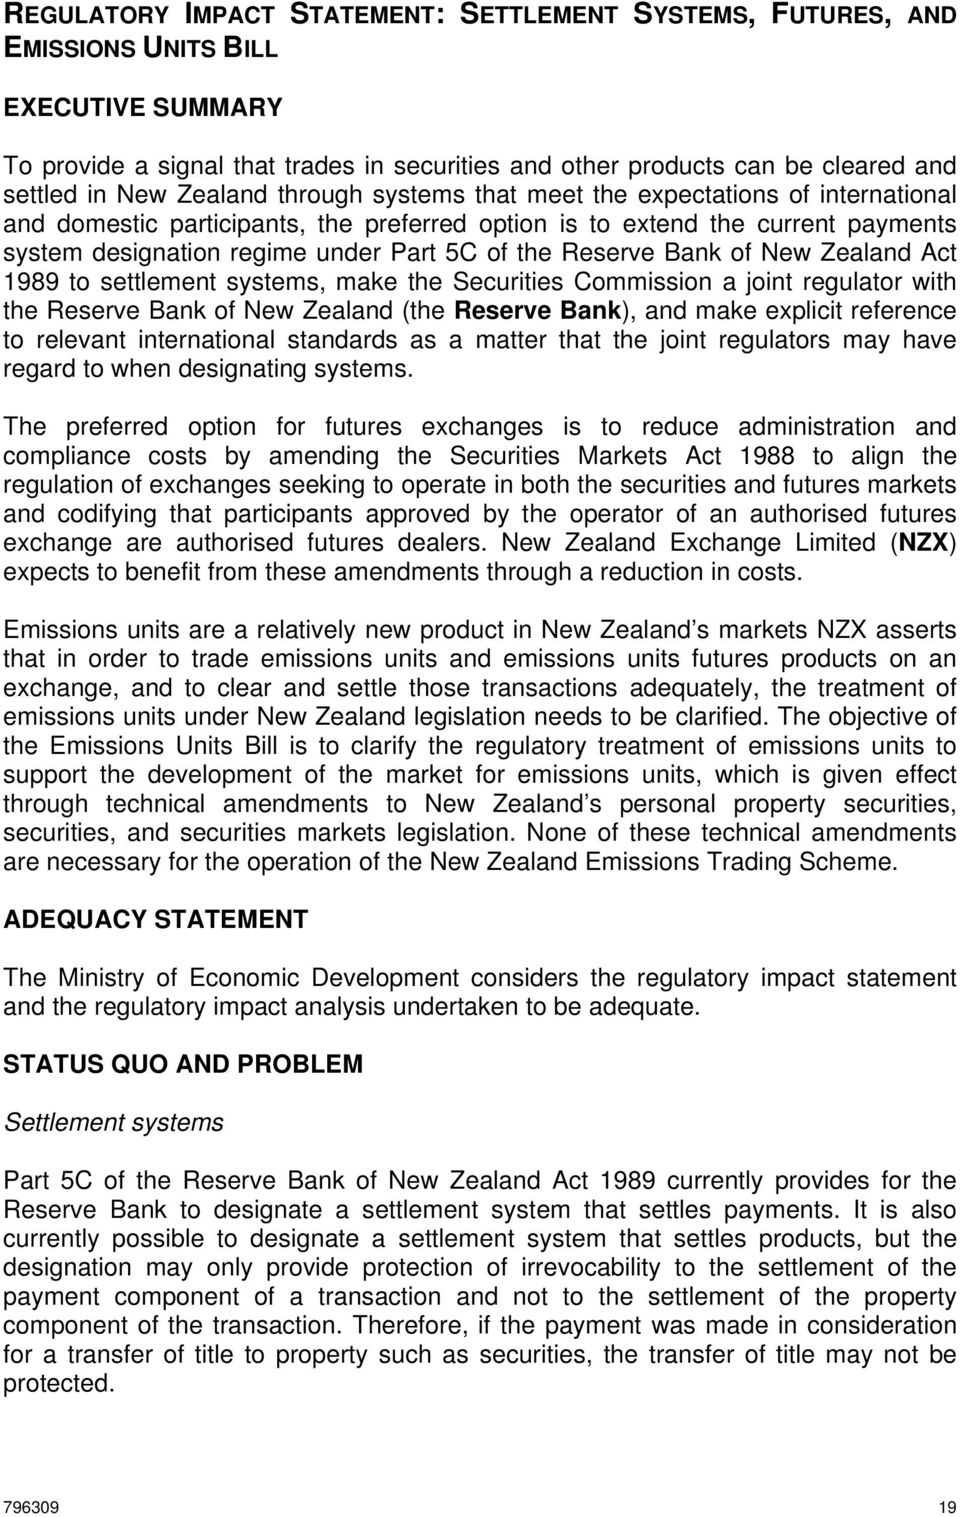 Reserve Bank of New Zealand Act 1989 to settlement systems, make the Securities Commission a joint regulator with the Reserve Bank of New Zealand (the Reserve Bank), and make explicit reference to